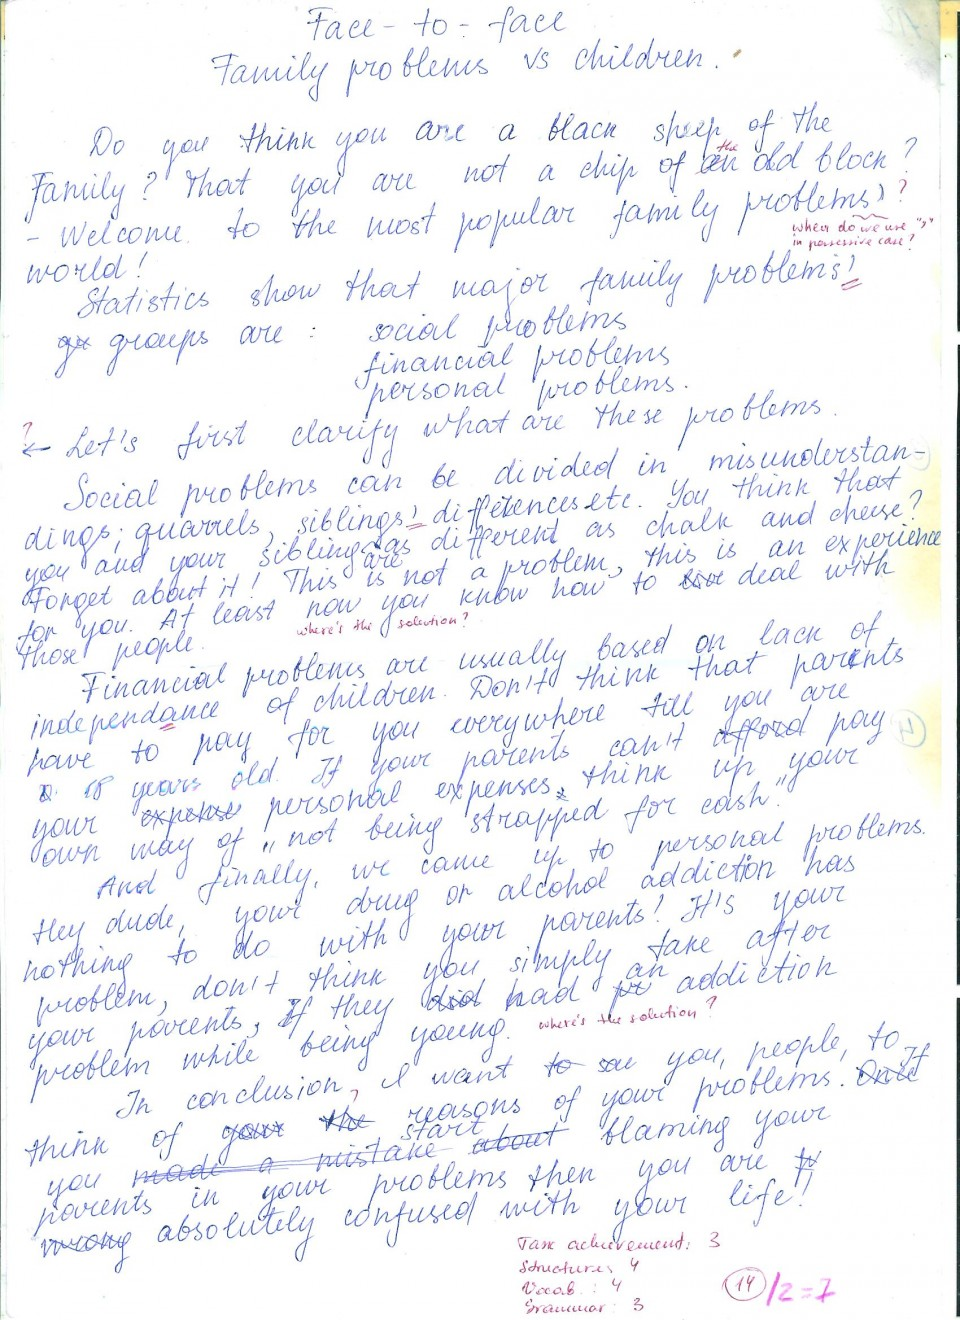 005 Image2070 Essay Example My Formidable Family How To Write In French Examples Spanish 960